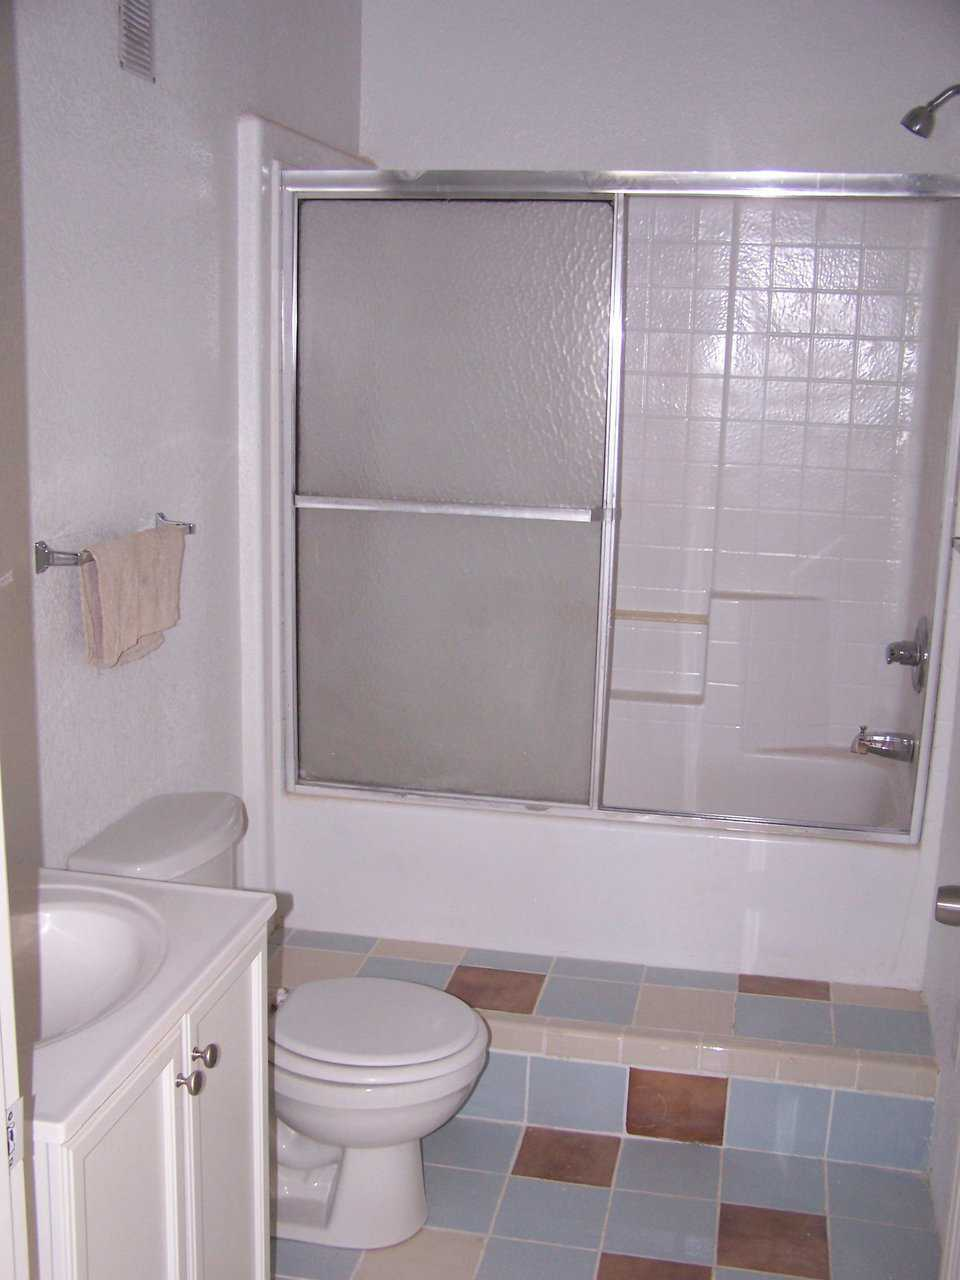 Guest bathroom — It includes a tub with an enclosed shower.